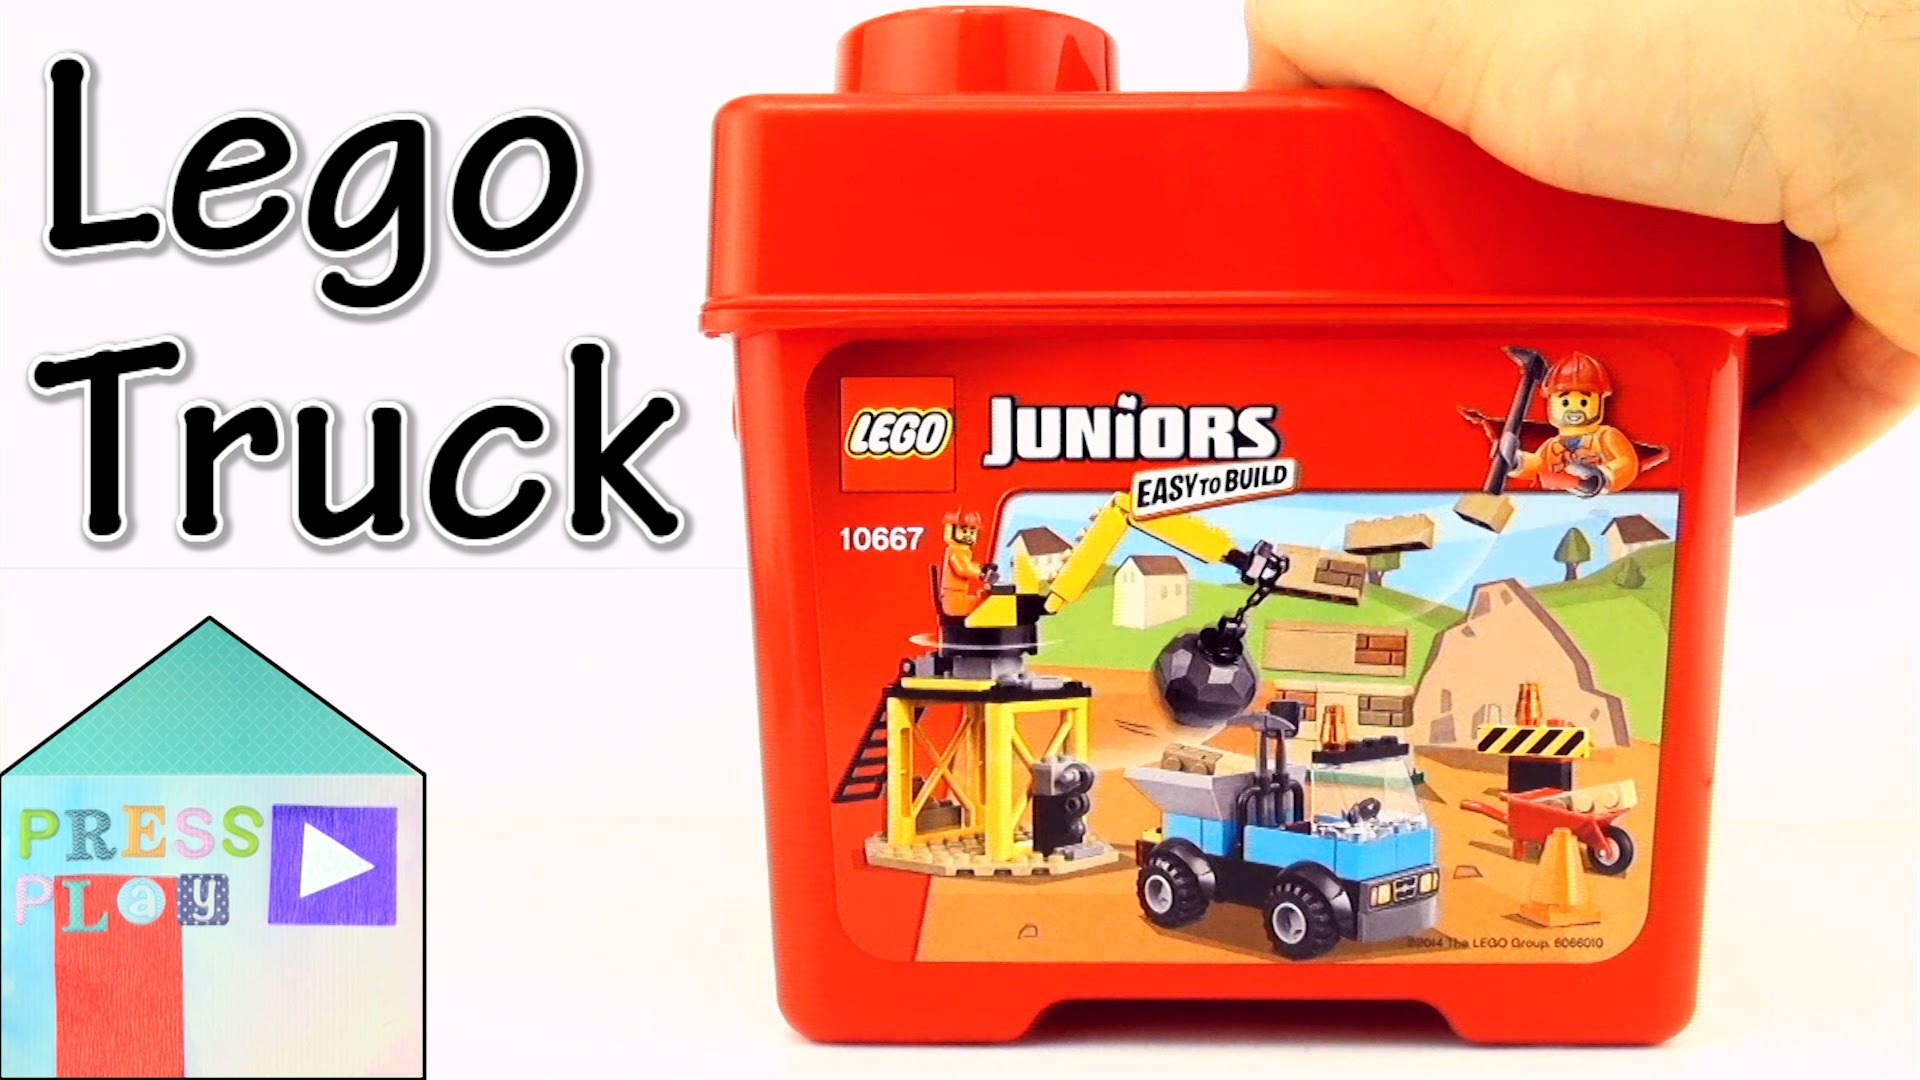 juniors easy to build lego